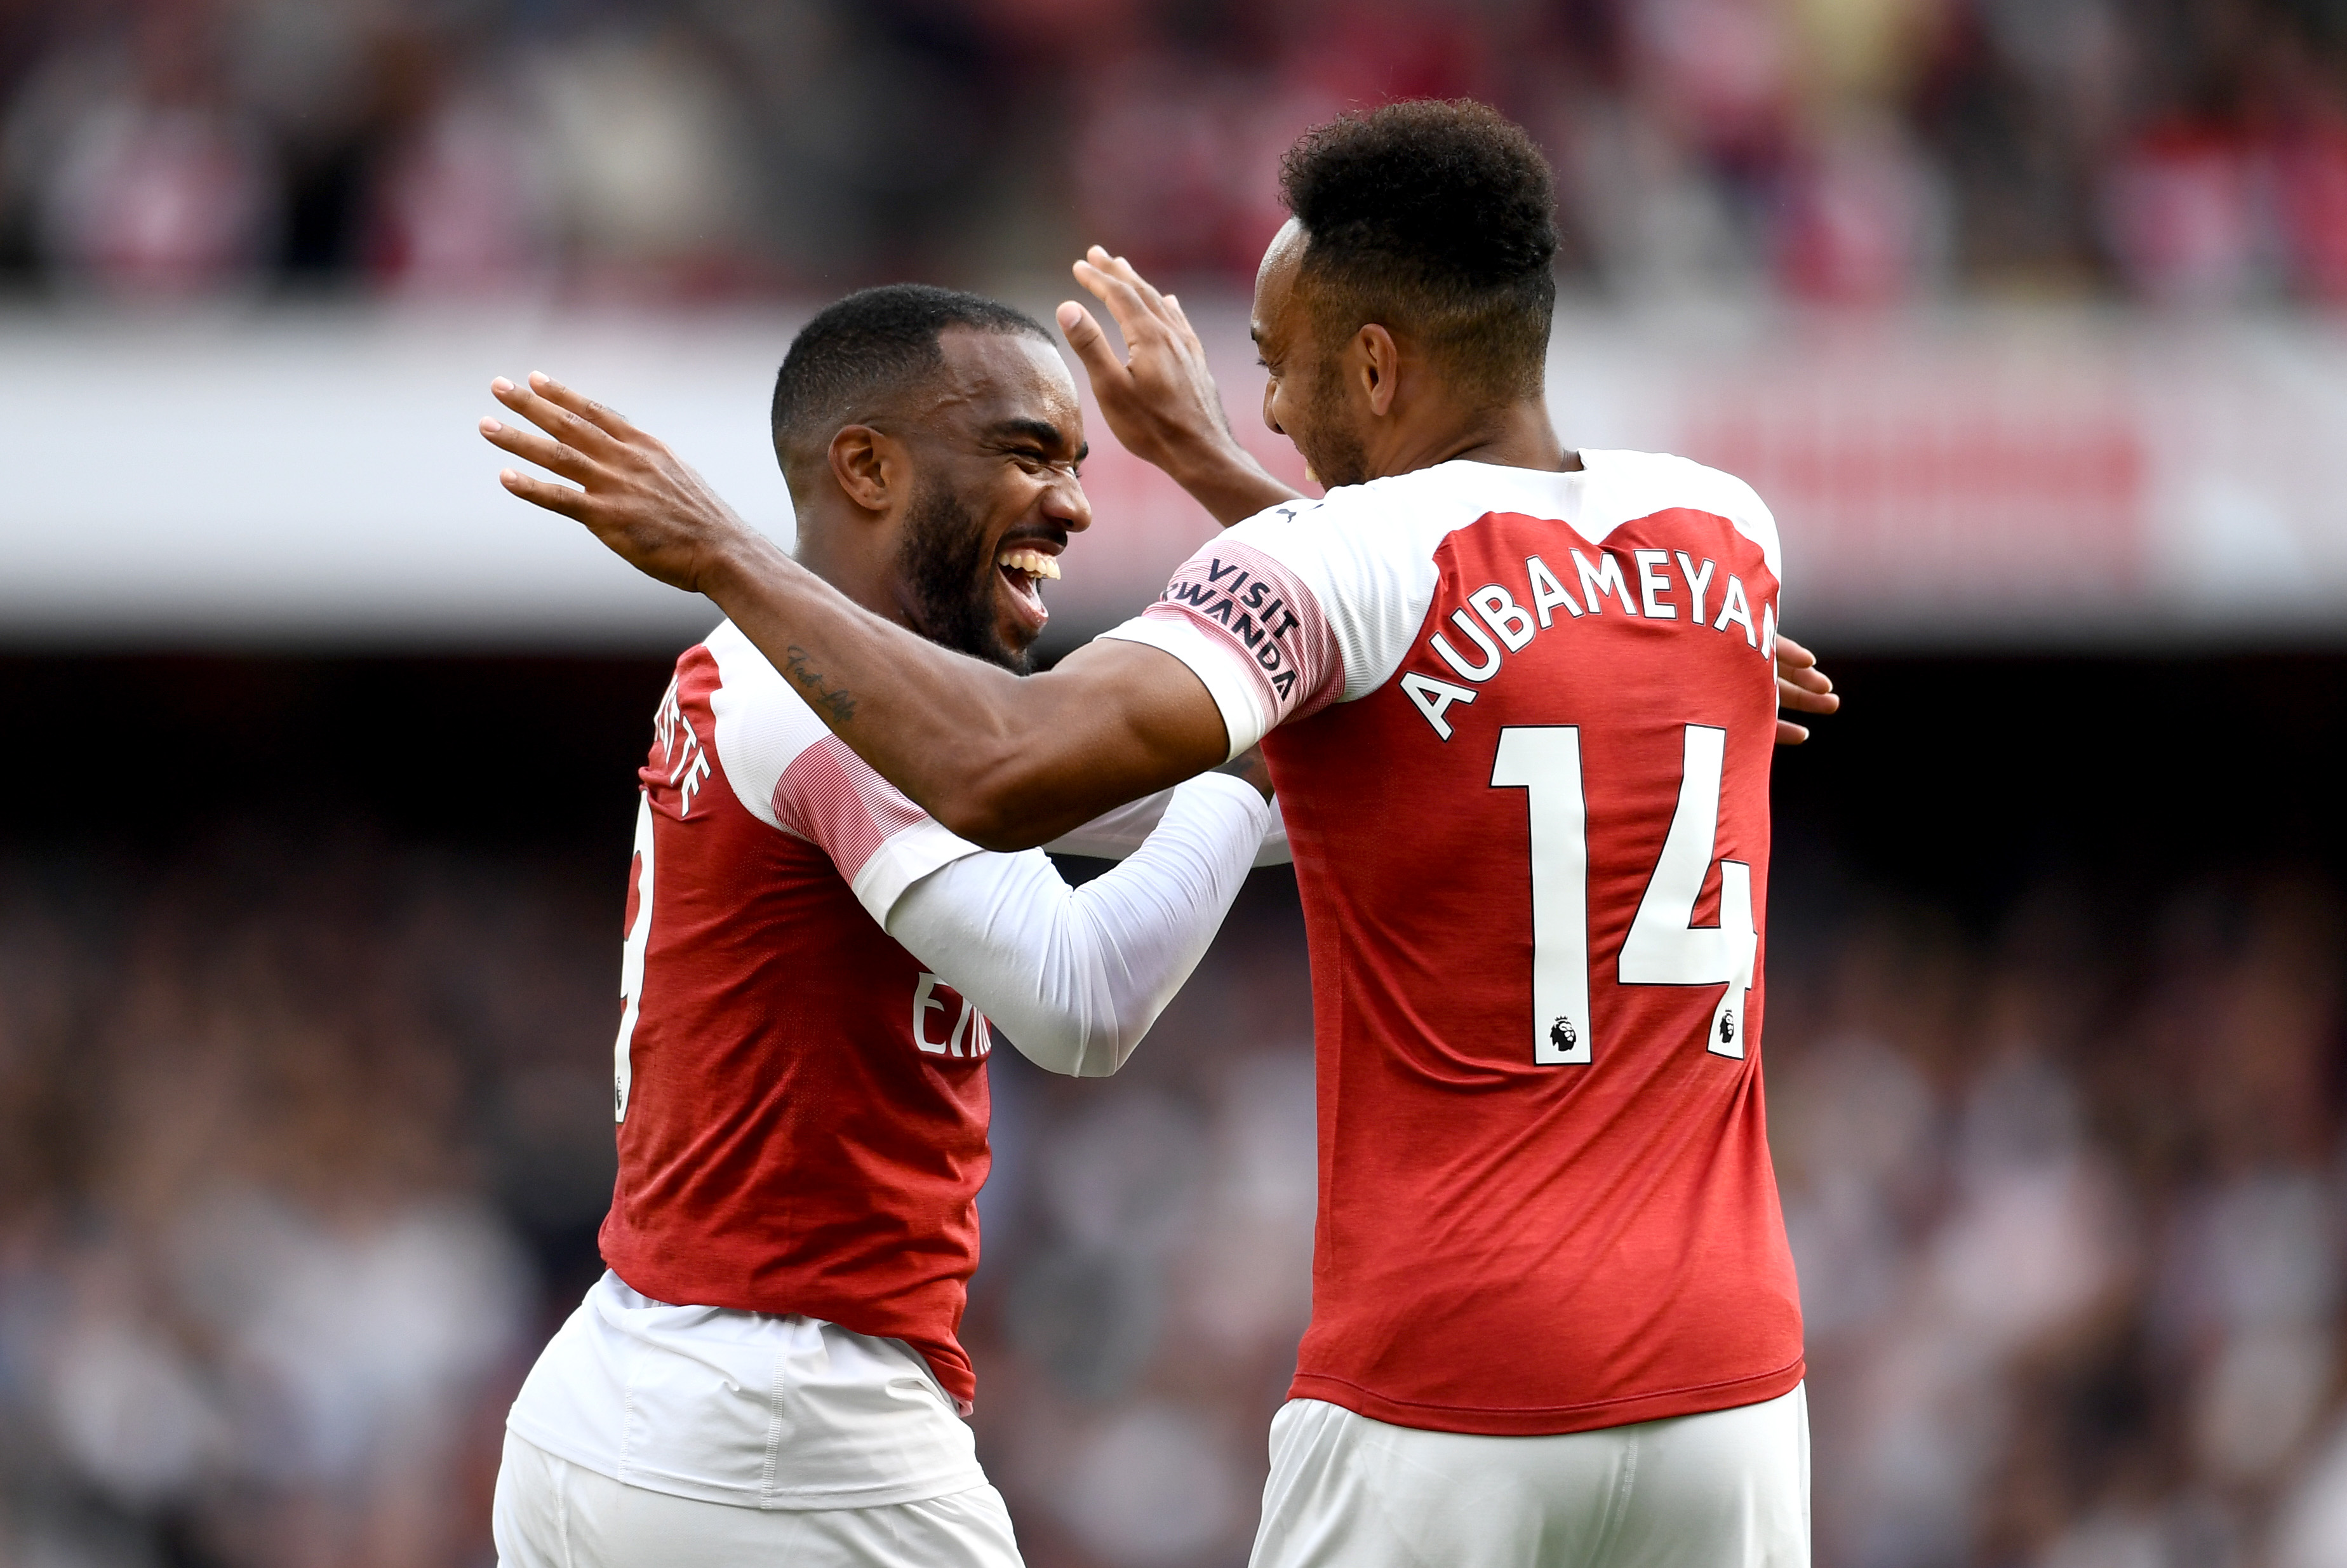 Failure to qualify for the CL could result in Aubameyang and Lacazette leaving the club. (Photo courtesy: AFP/Getty)